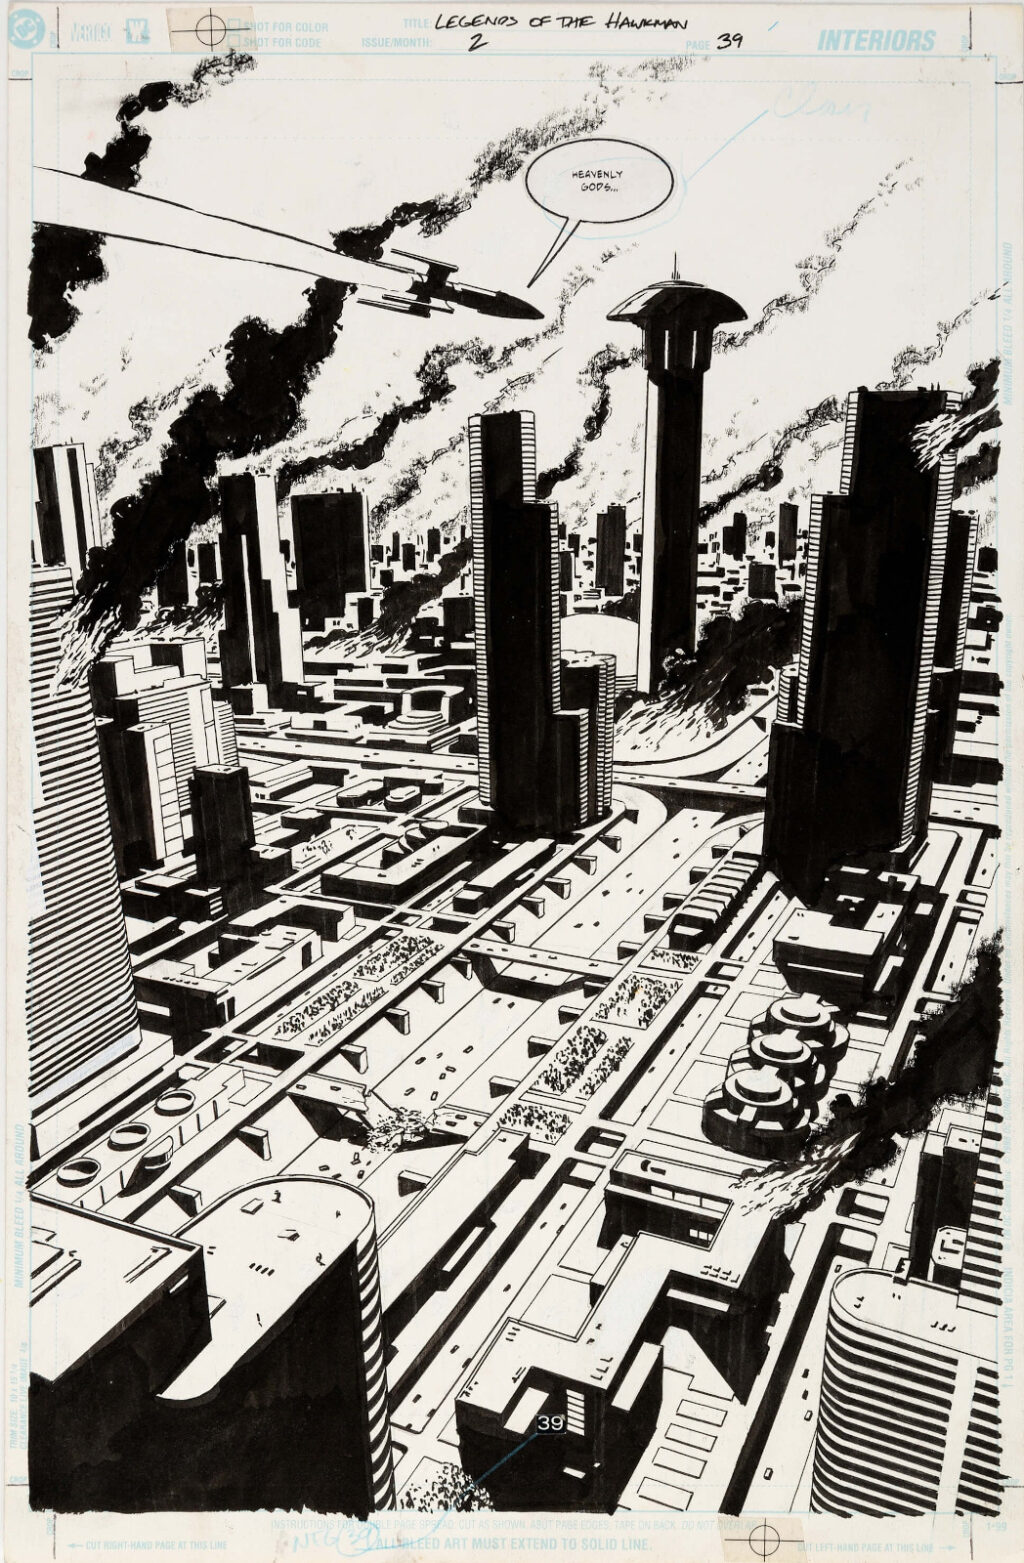 Legend of the Hawkman issue 2 page 39 by Michael Lark